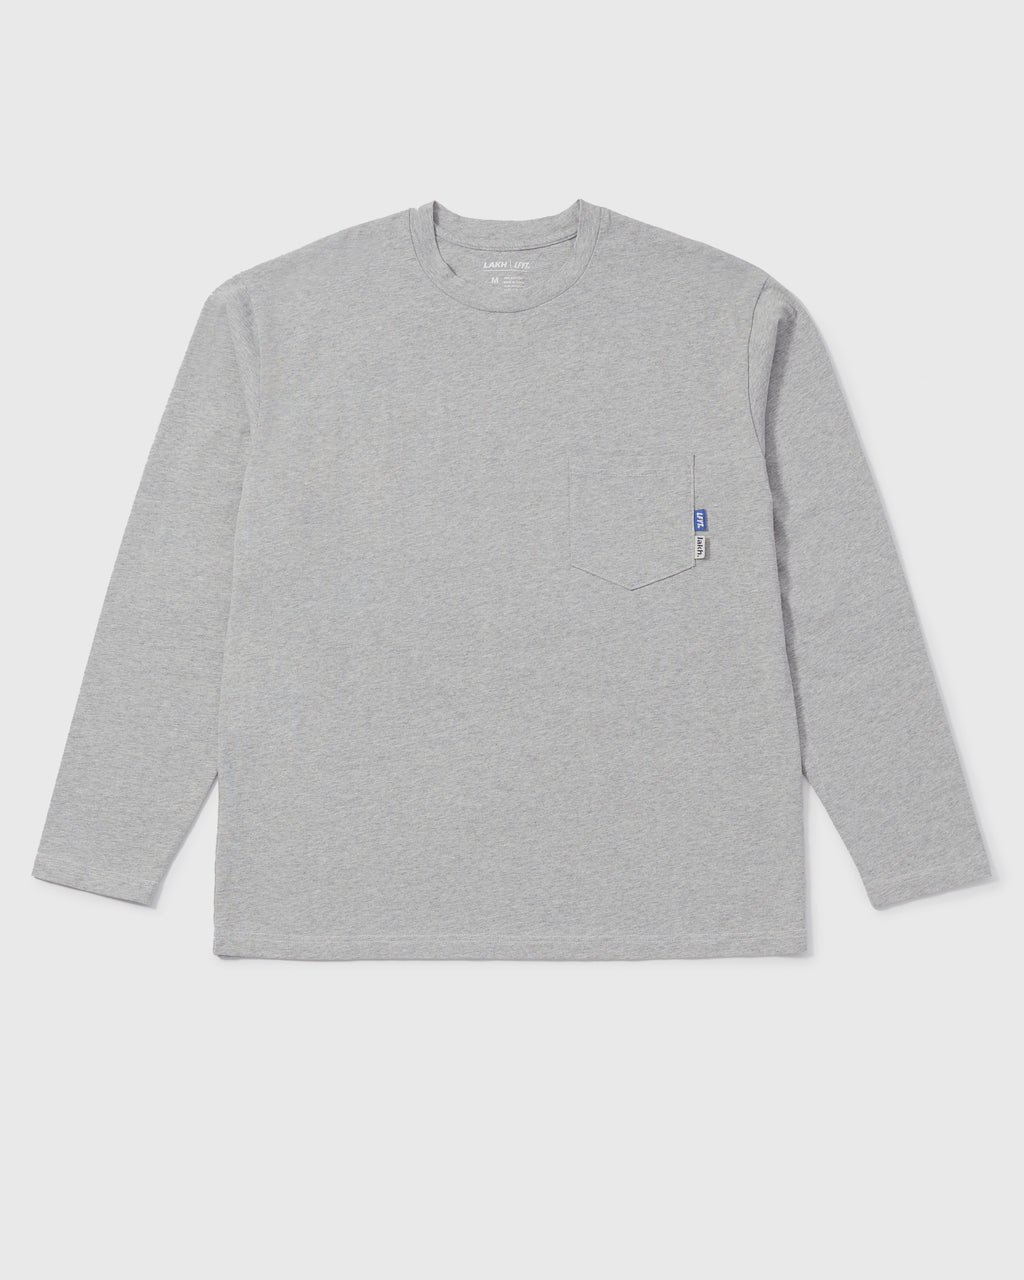 LAKH X LFYT Pocket Long Tee - Light Grey